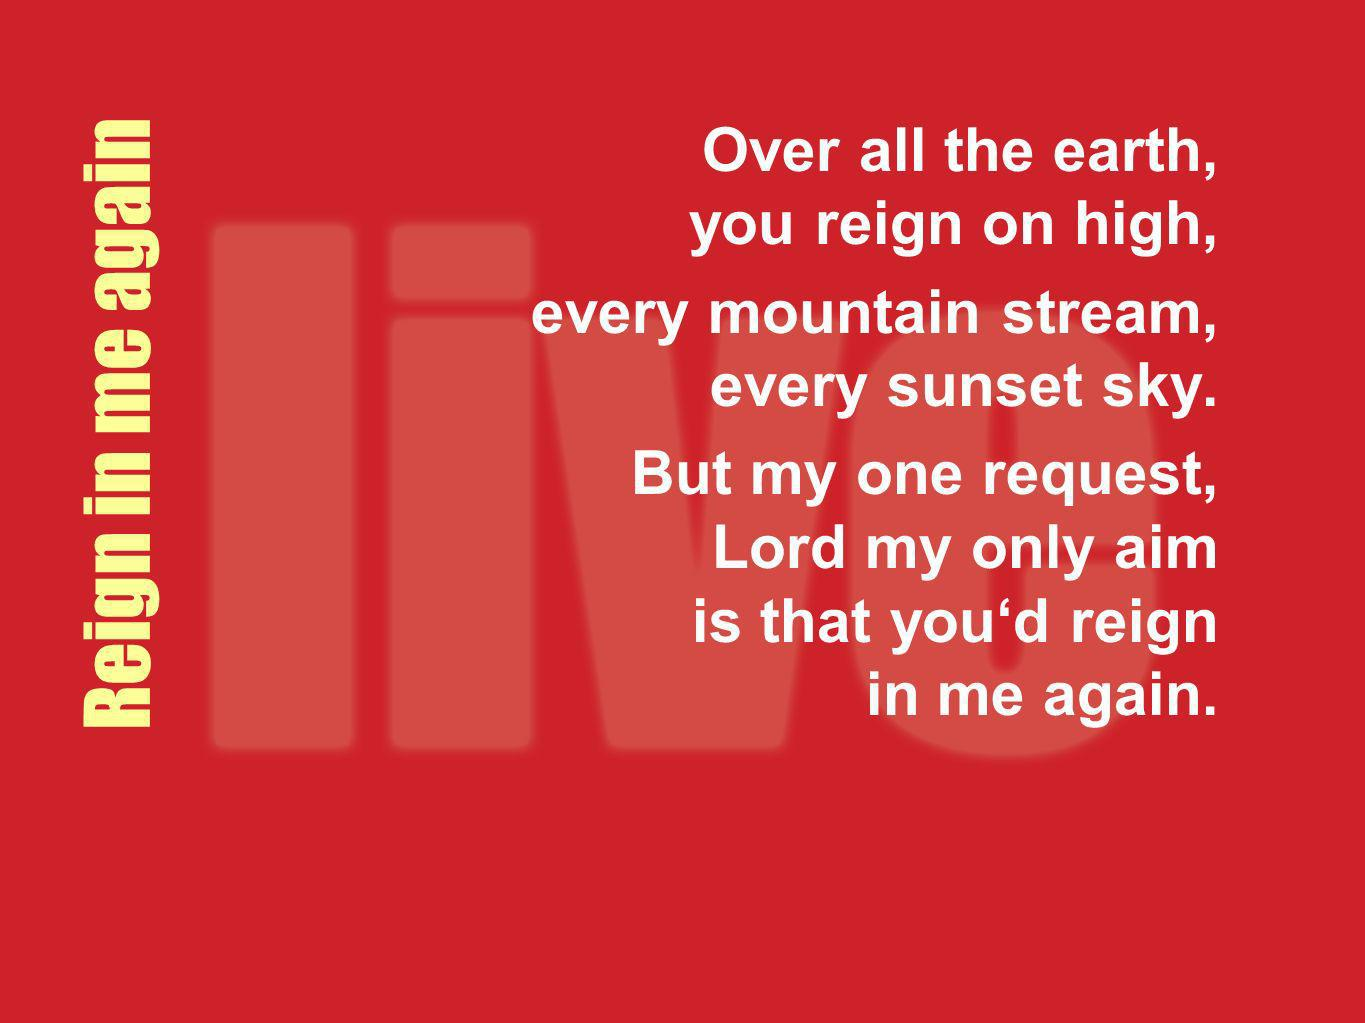 Reign in me again Over all the earth, you reign on high, every mountain stream, every sunset sky. But my one request, Lord my only aim is that youd re